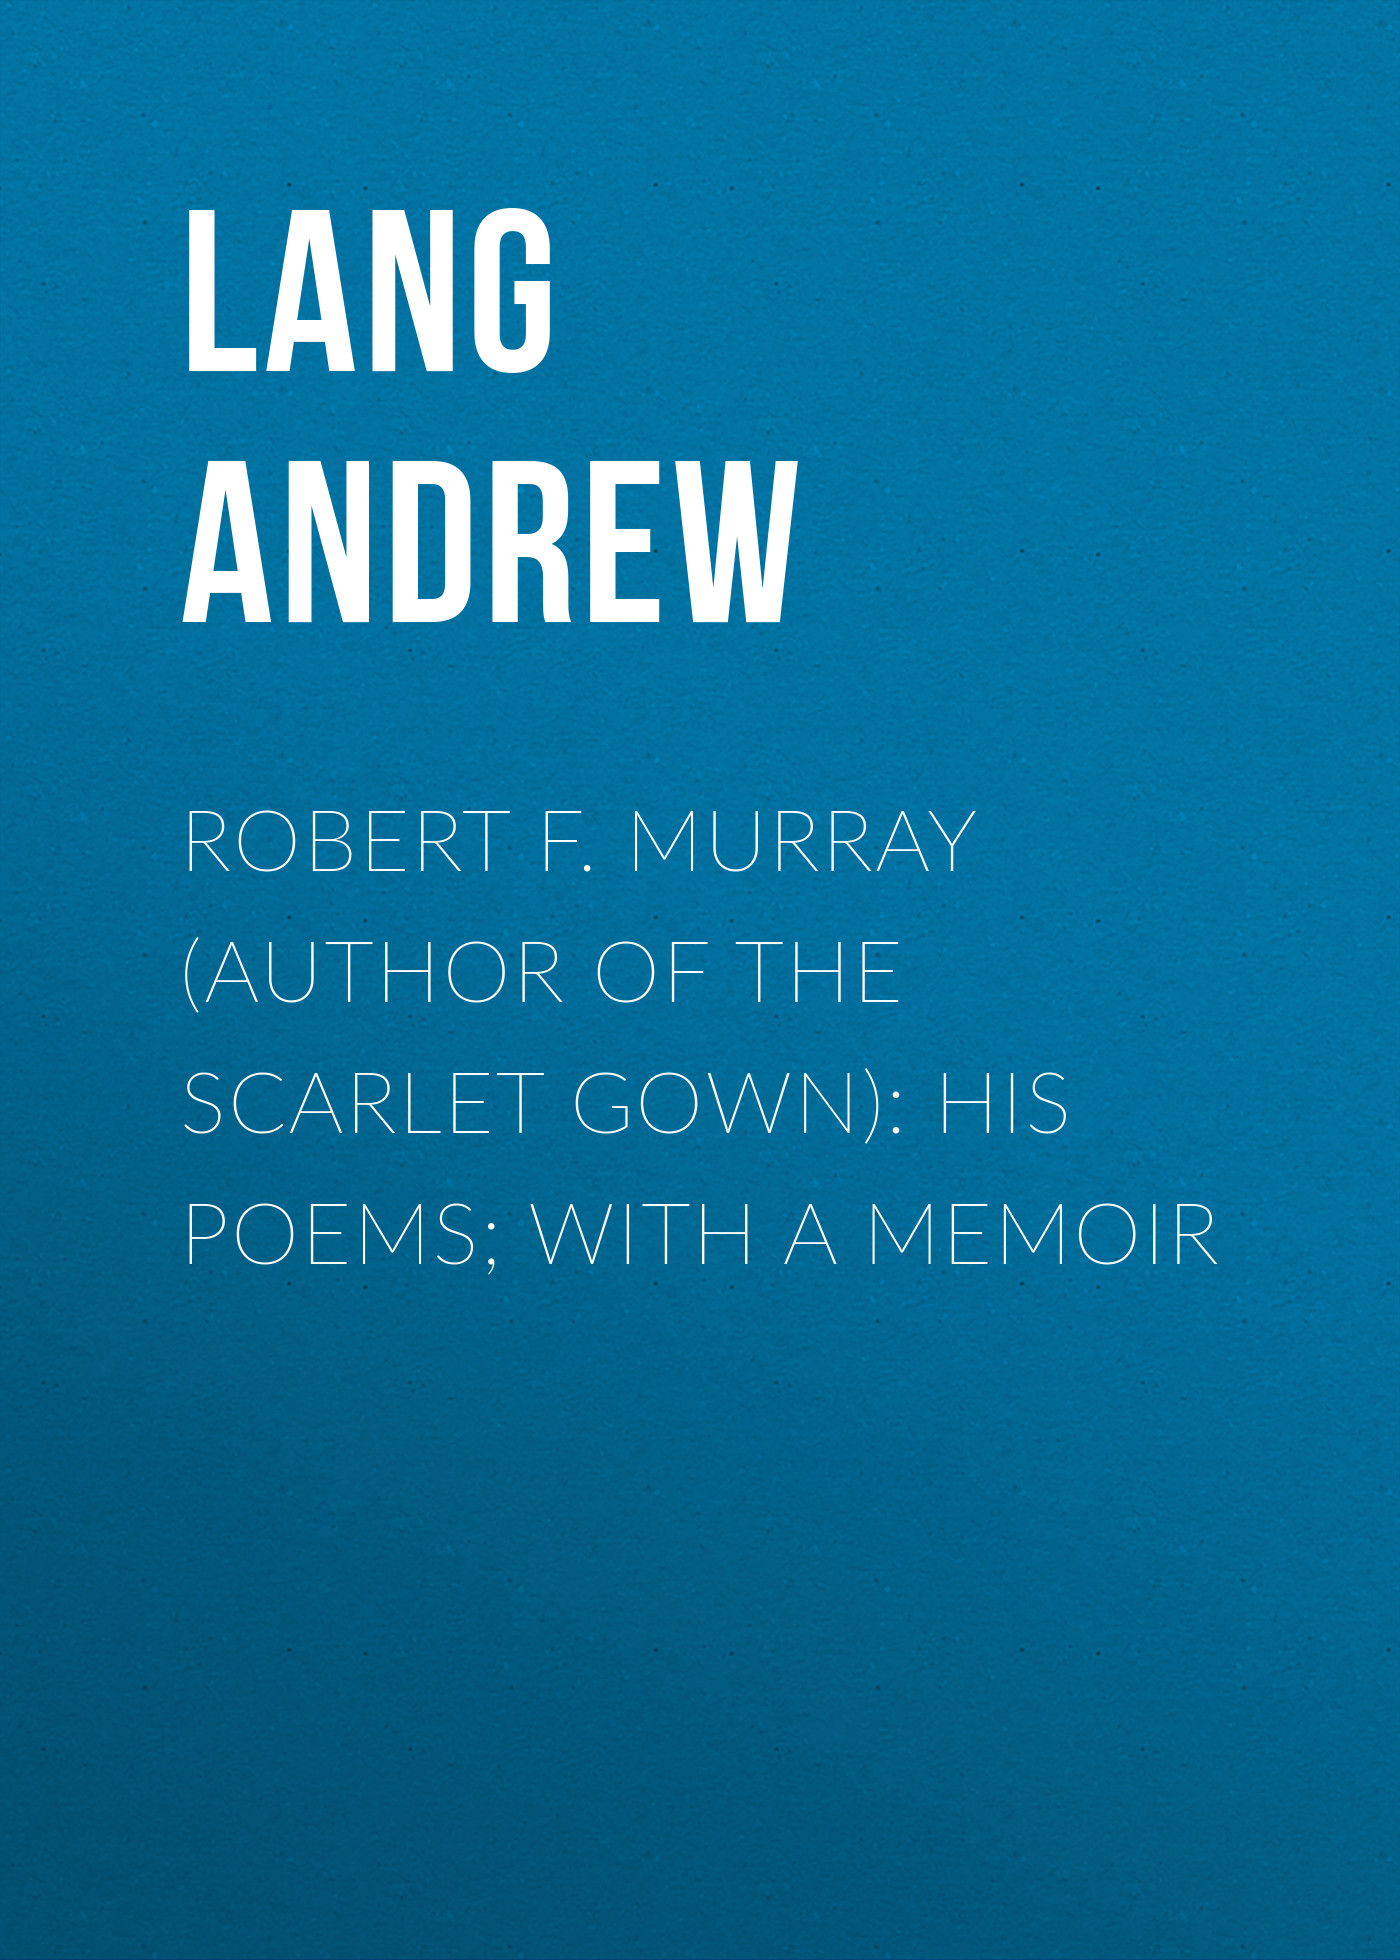 Lang Andrew Robert F. Murray (Author of the Scarlet Gown): His Poems; with a Memoir lawadka 100 page 2